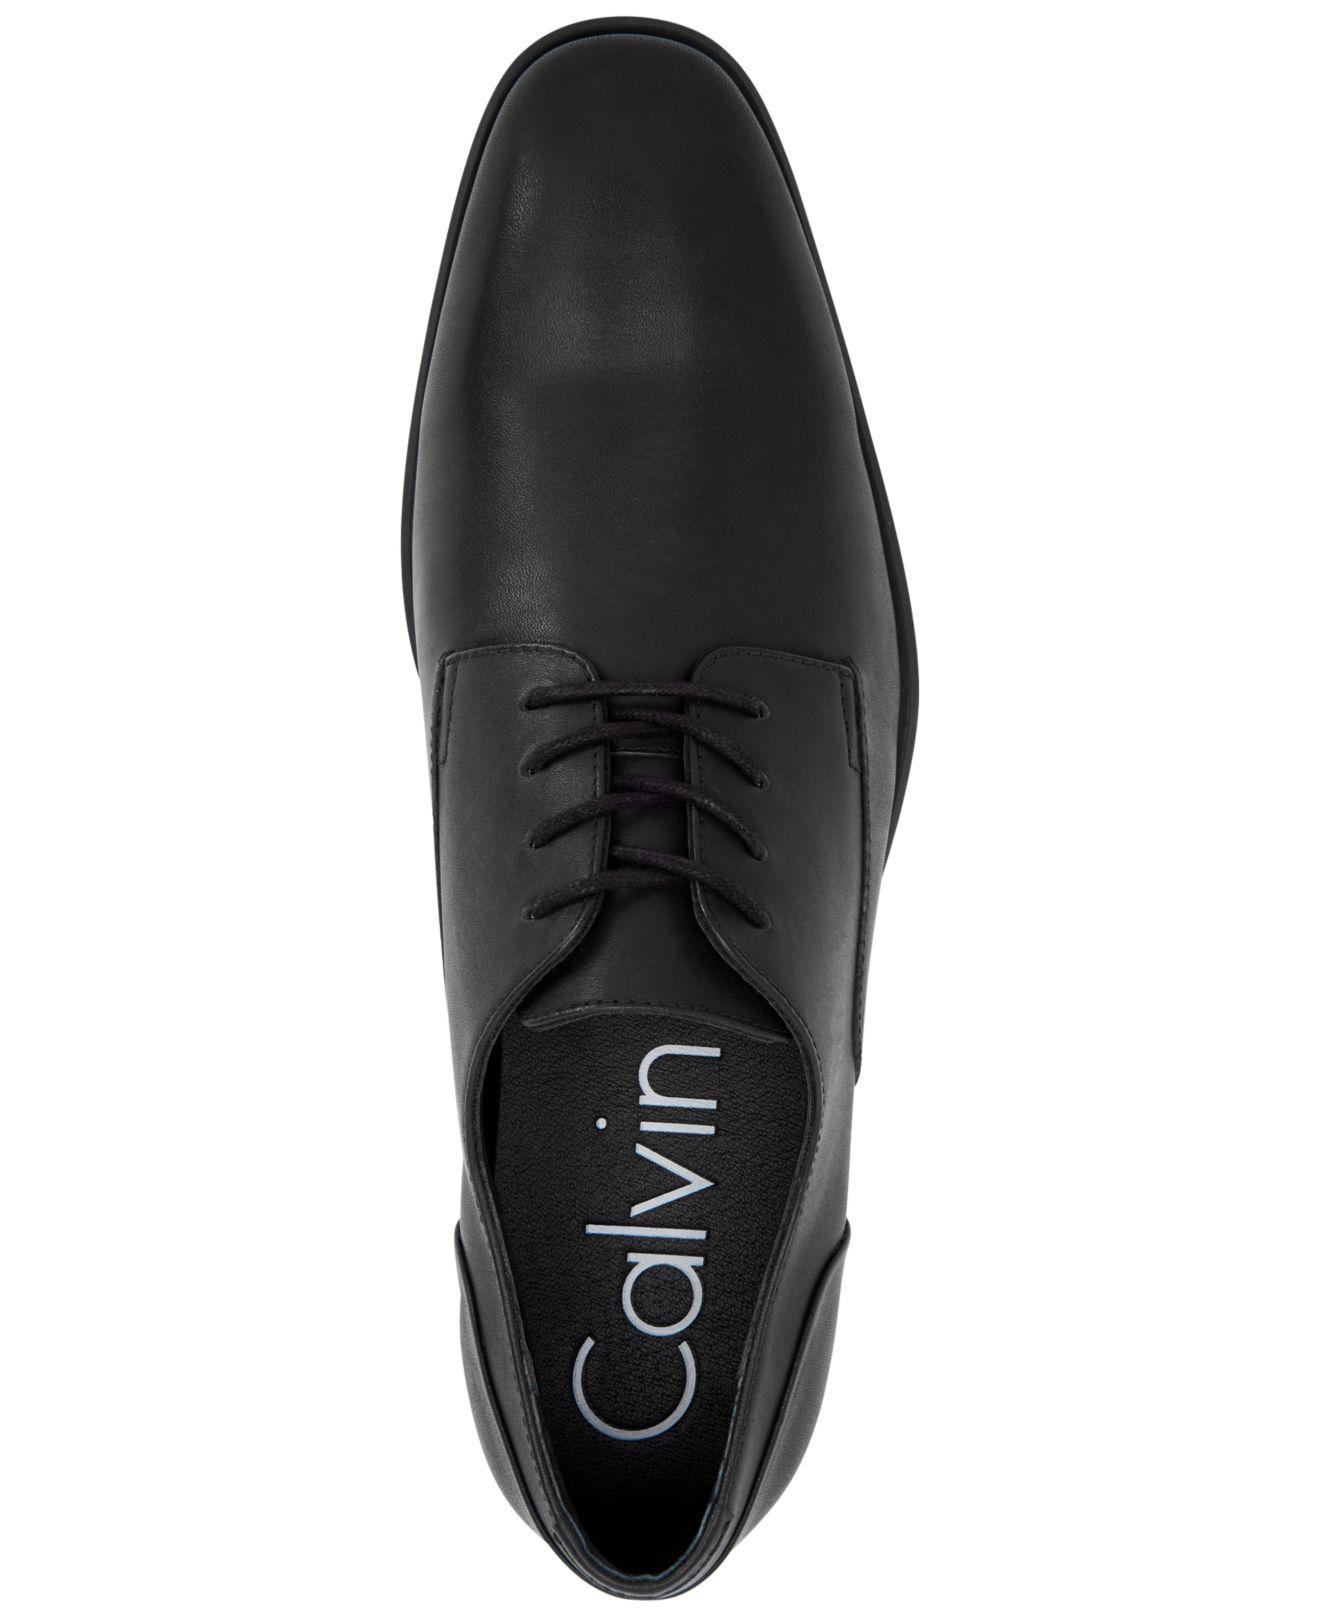 Buy Klein Calvin dress shoes picture trends